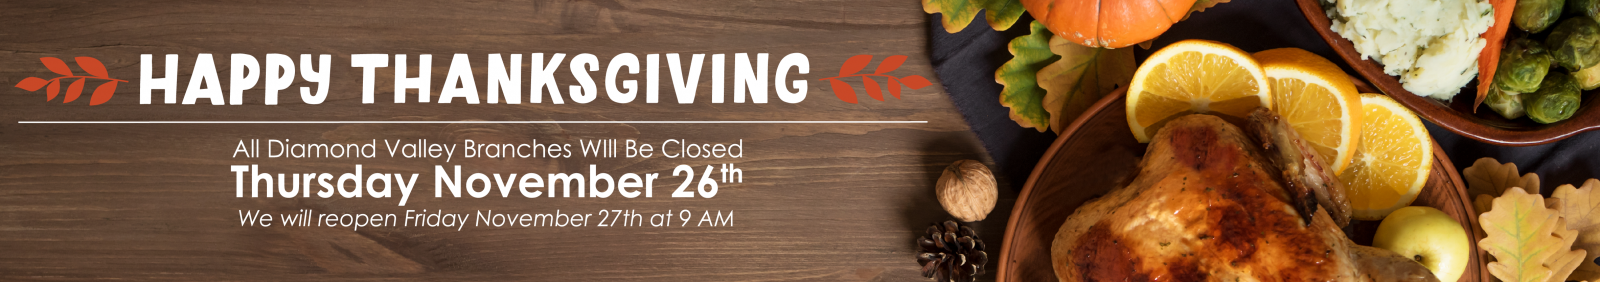 We will be closed Thursday November 26th for Thanksgiving